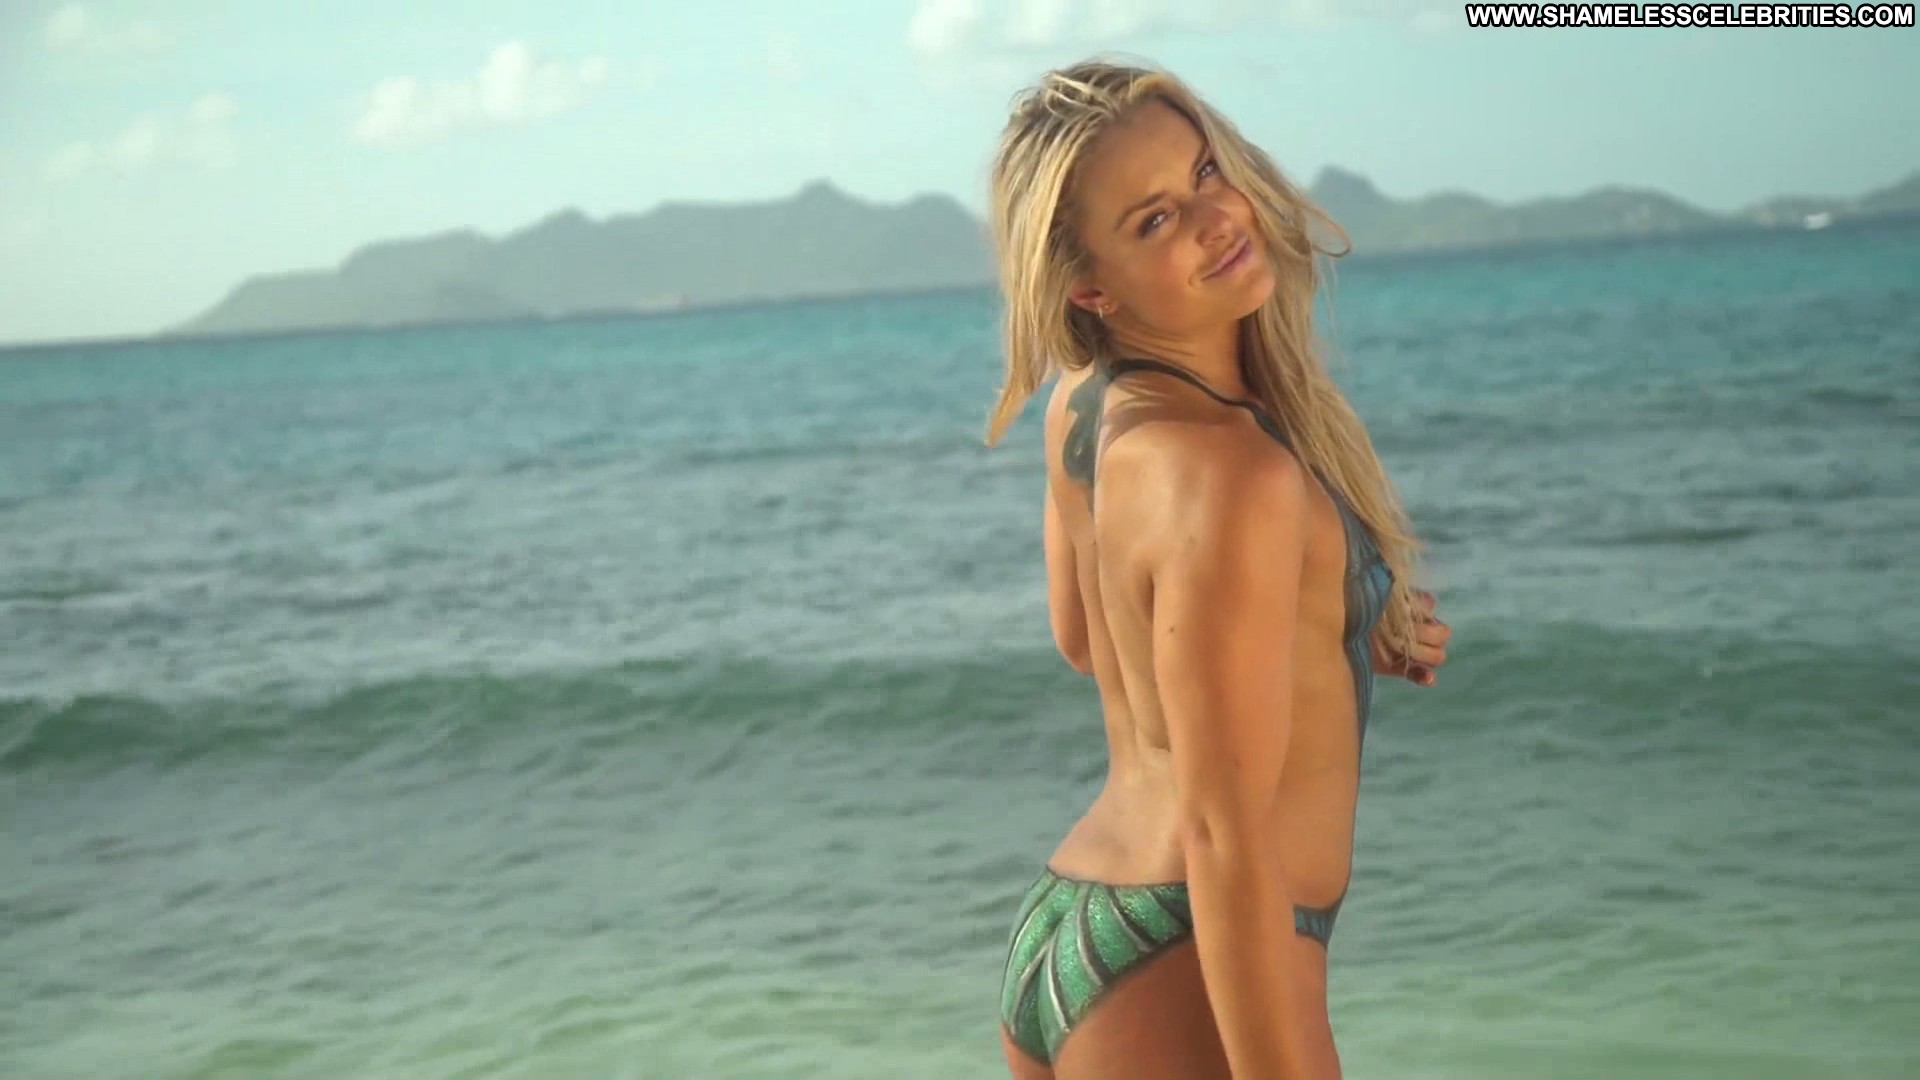 ... Full Frontal Celebrity Beautiful Babe Posing Hot Nude Hd Full Frontal